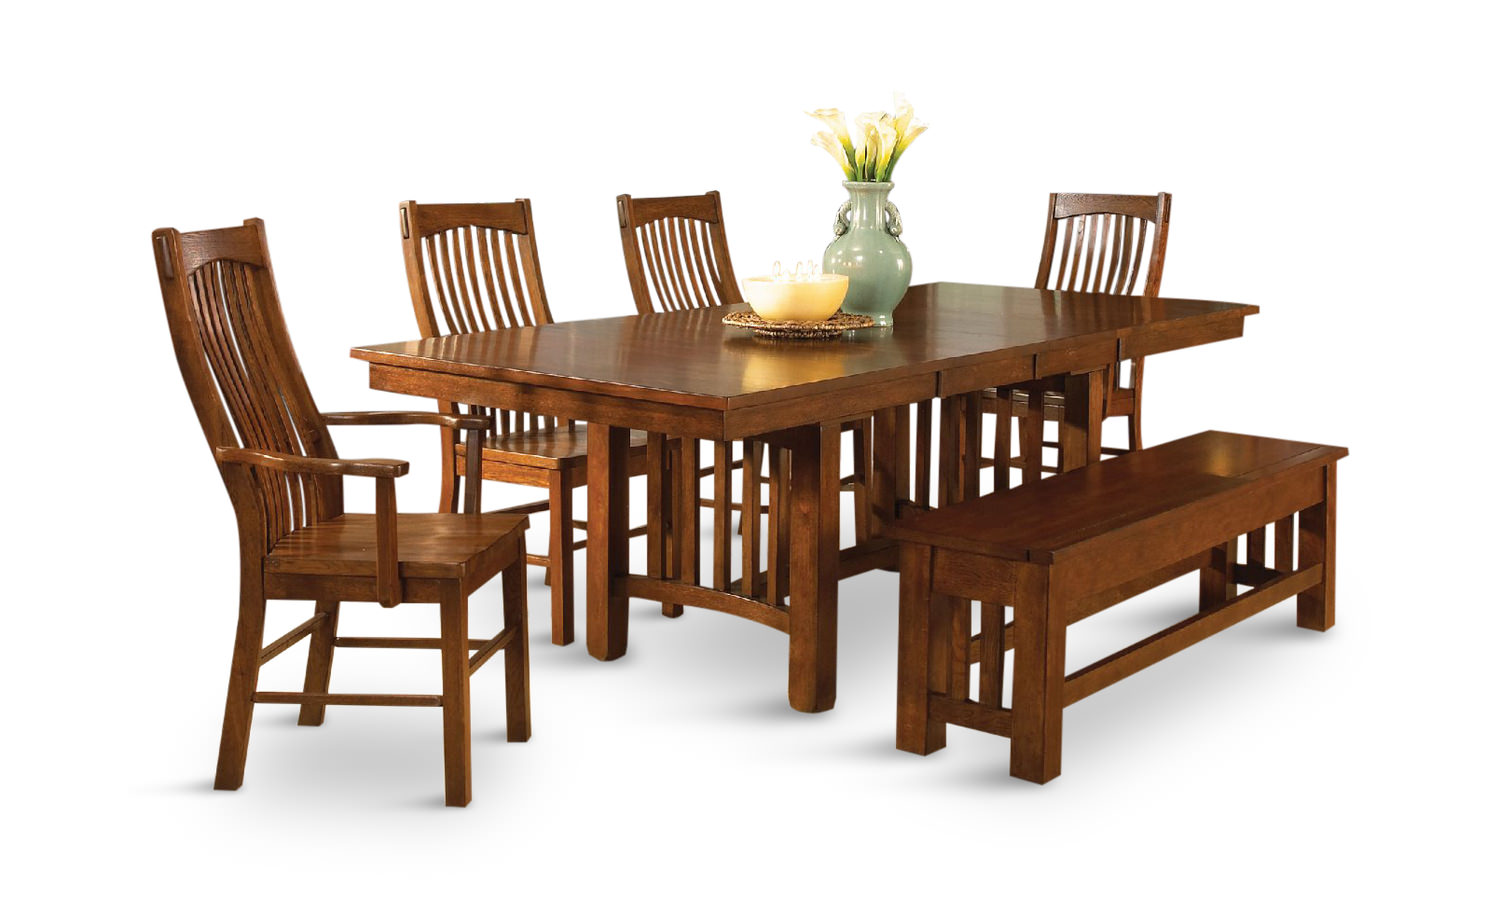 Laurelhurst Solid Oak Mission Table With 4 Side Chairs And